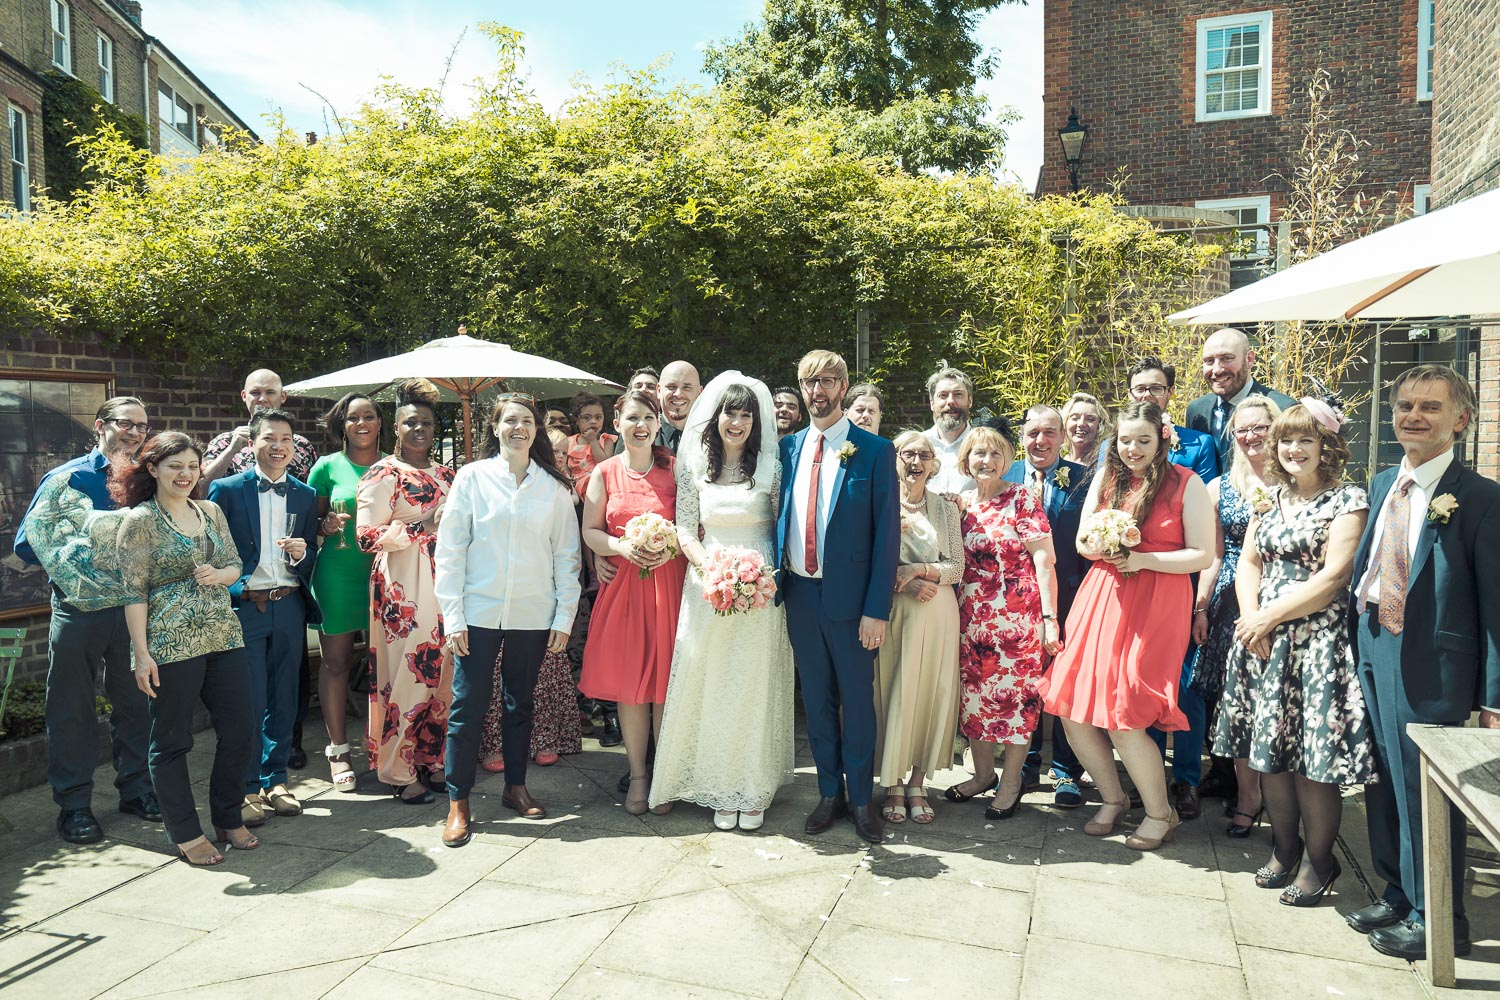 burgh-house-hampstead-north-london-wedding-0107.jpg